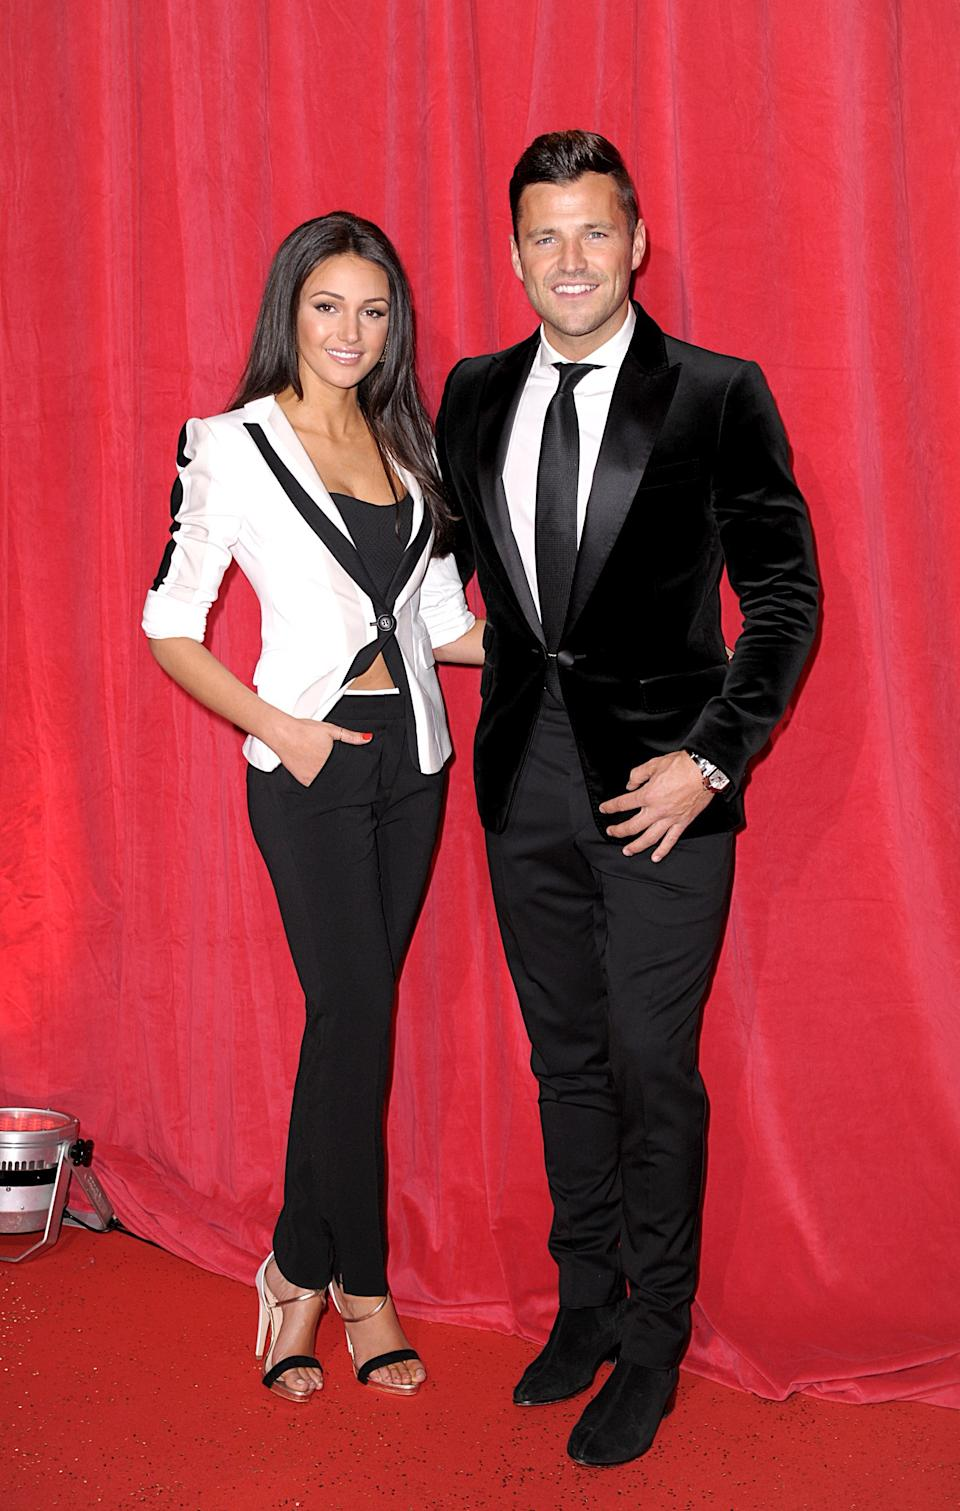 Michelle Keegan and Mark Wright arriving for the 2014 British Soap Awards at The Hackney Empire, 291 Mare St, London.